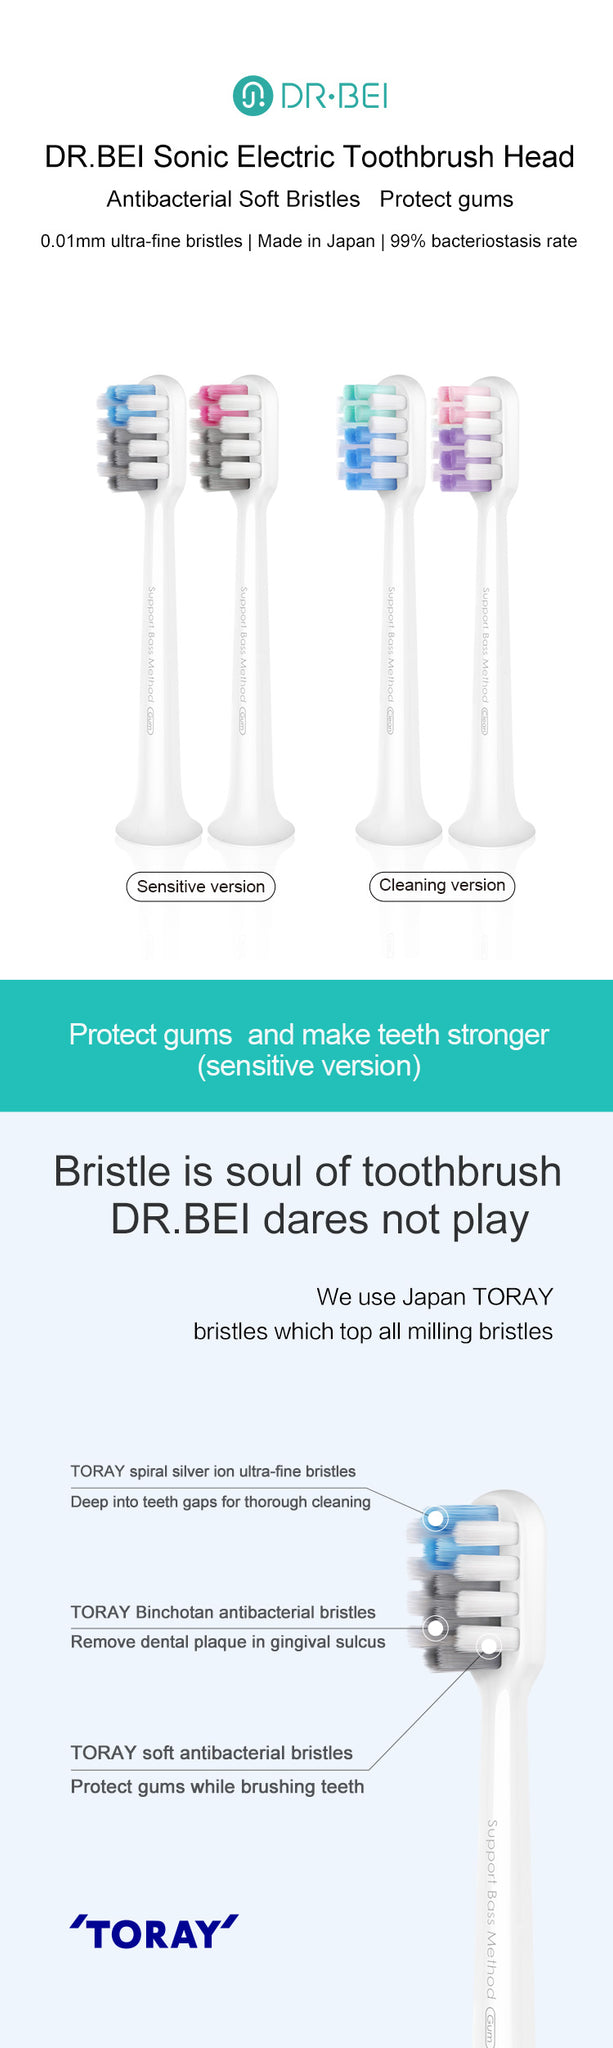 DR.BEI C1 Toothbrush Heads, 2 Pieces (Clean) Xiaomi Youpin DR·BEI Electric Toothbrush Heads for DR.BEI C01 Sonic Electric Toothbrush Replaceable Sensitive / Cleaning Tooth Brush Heads